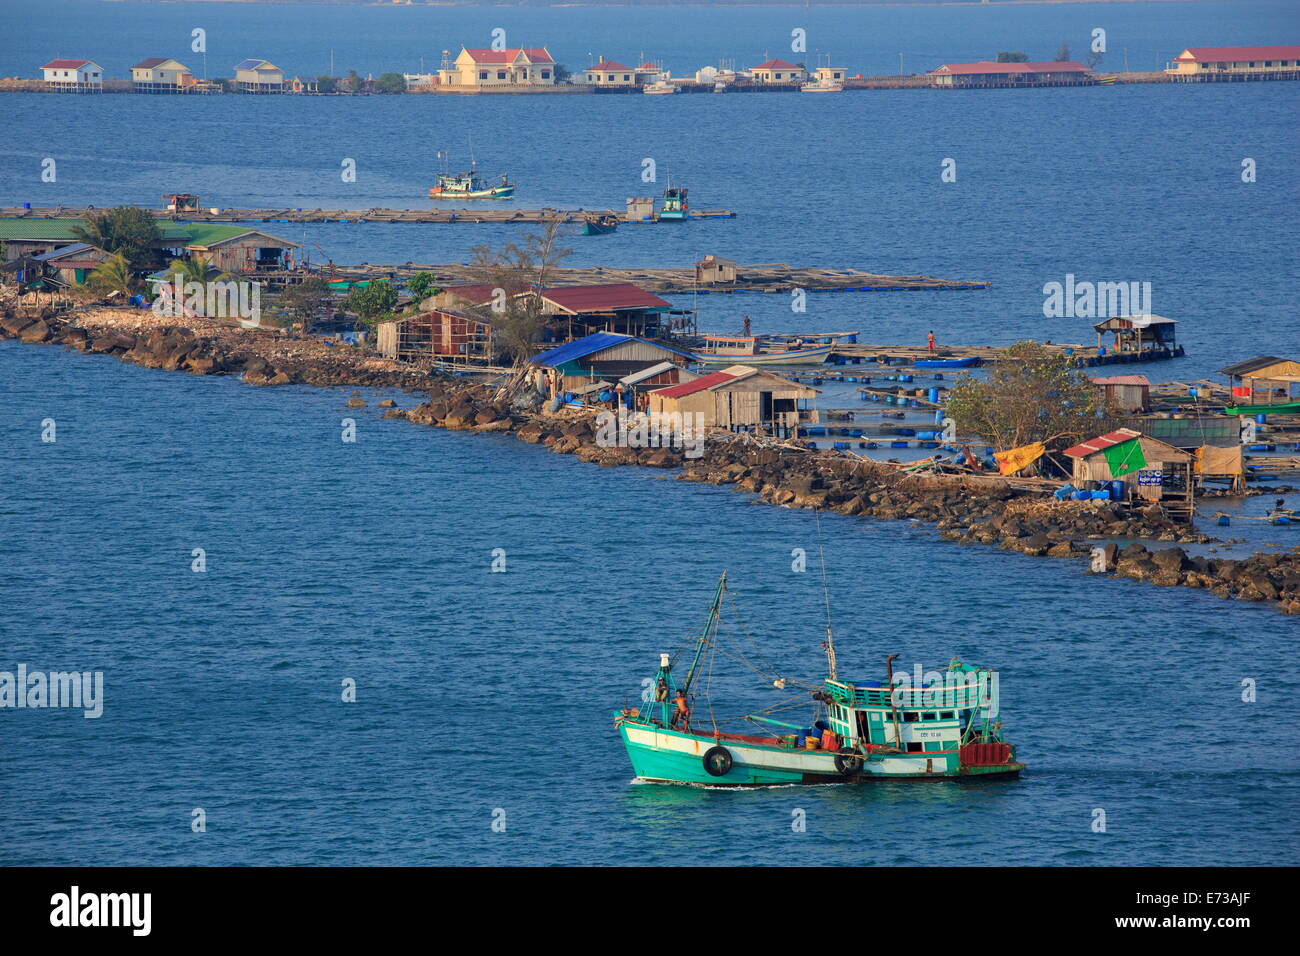 Fishing village in Sihanoukville Port, Sihanouk Province, Cambodia, Indochina, Southeast Asia, Asia Stock Photo